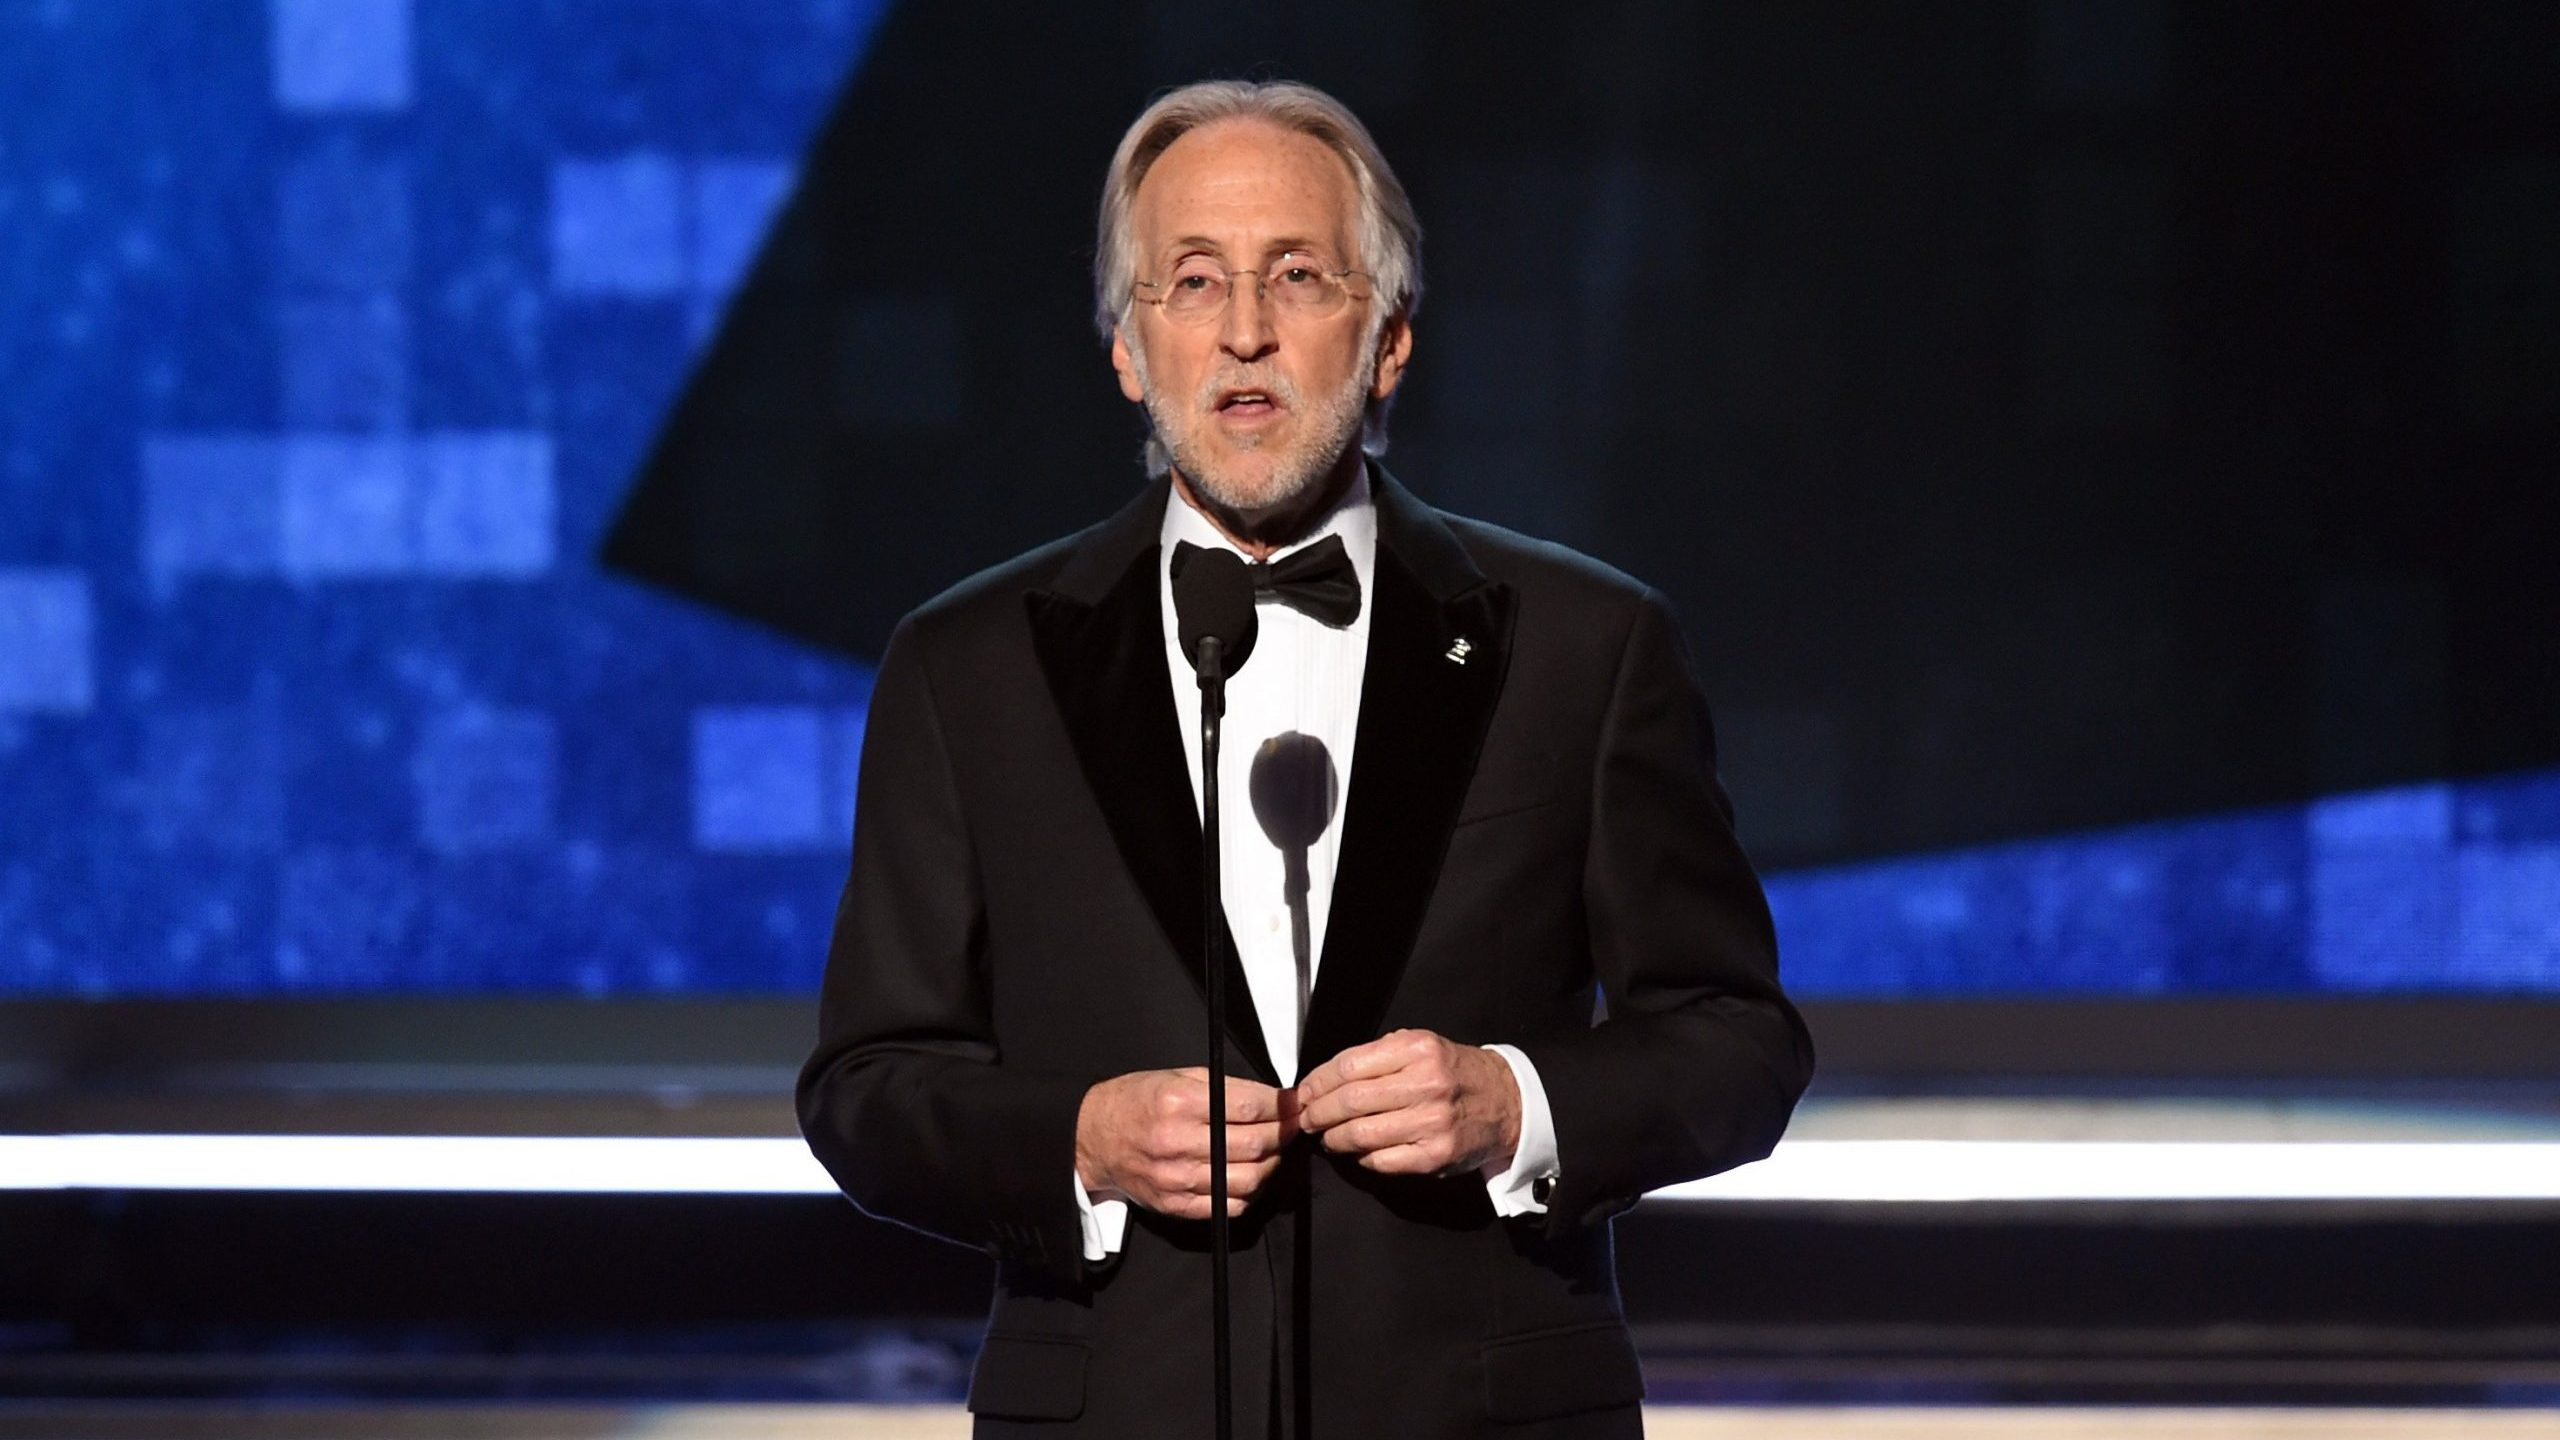 President and CEO of The Recording Academy Neil Portnow speaks onstage during the 61st Annual GRAMMY Awards at Staples Center on Feb. 10, 2019. (Credit: Kevin Winter/Getty Images for The Recording Academy)